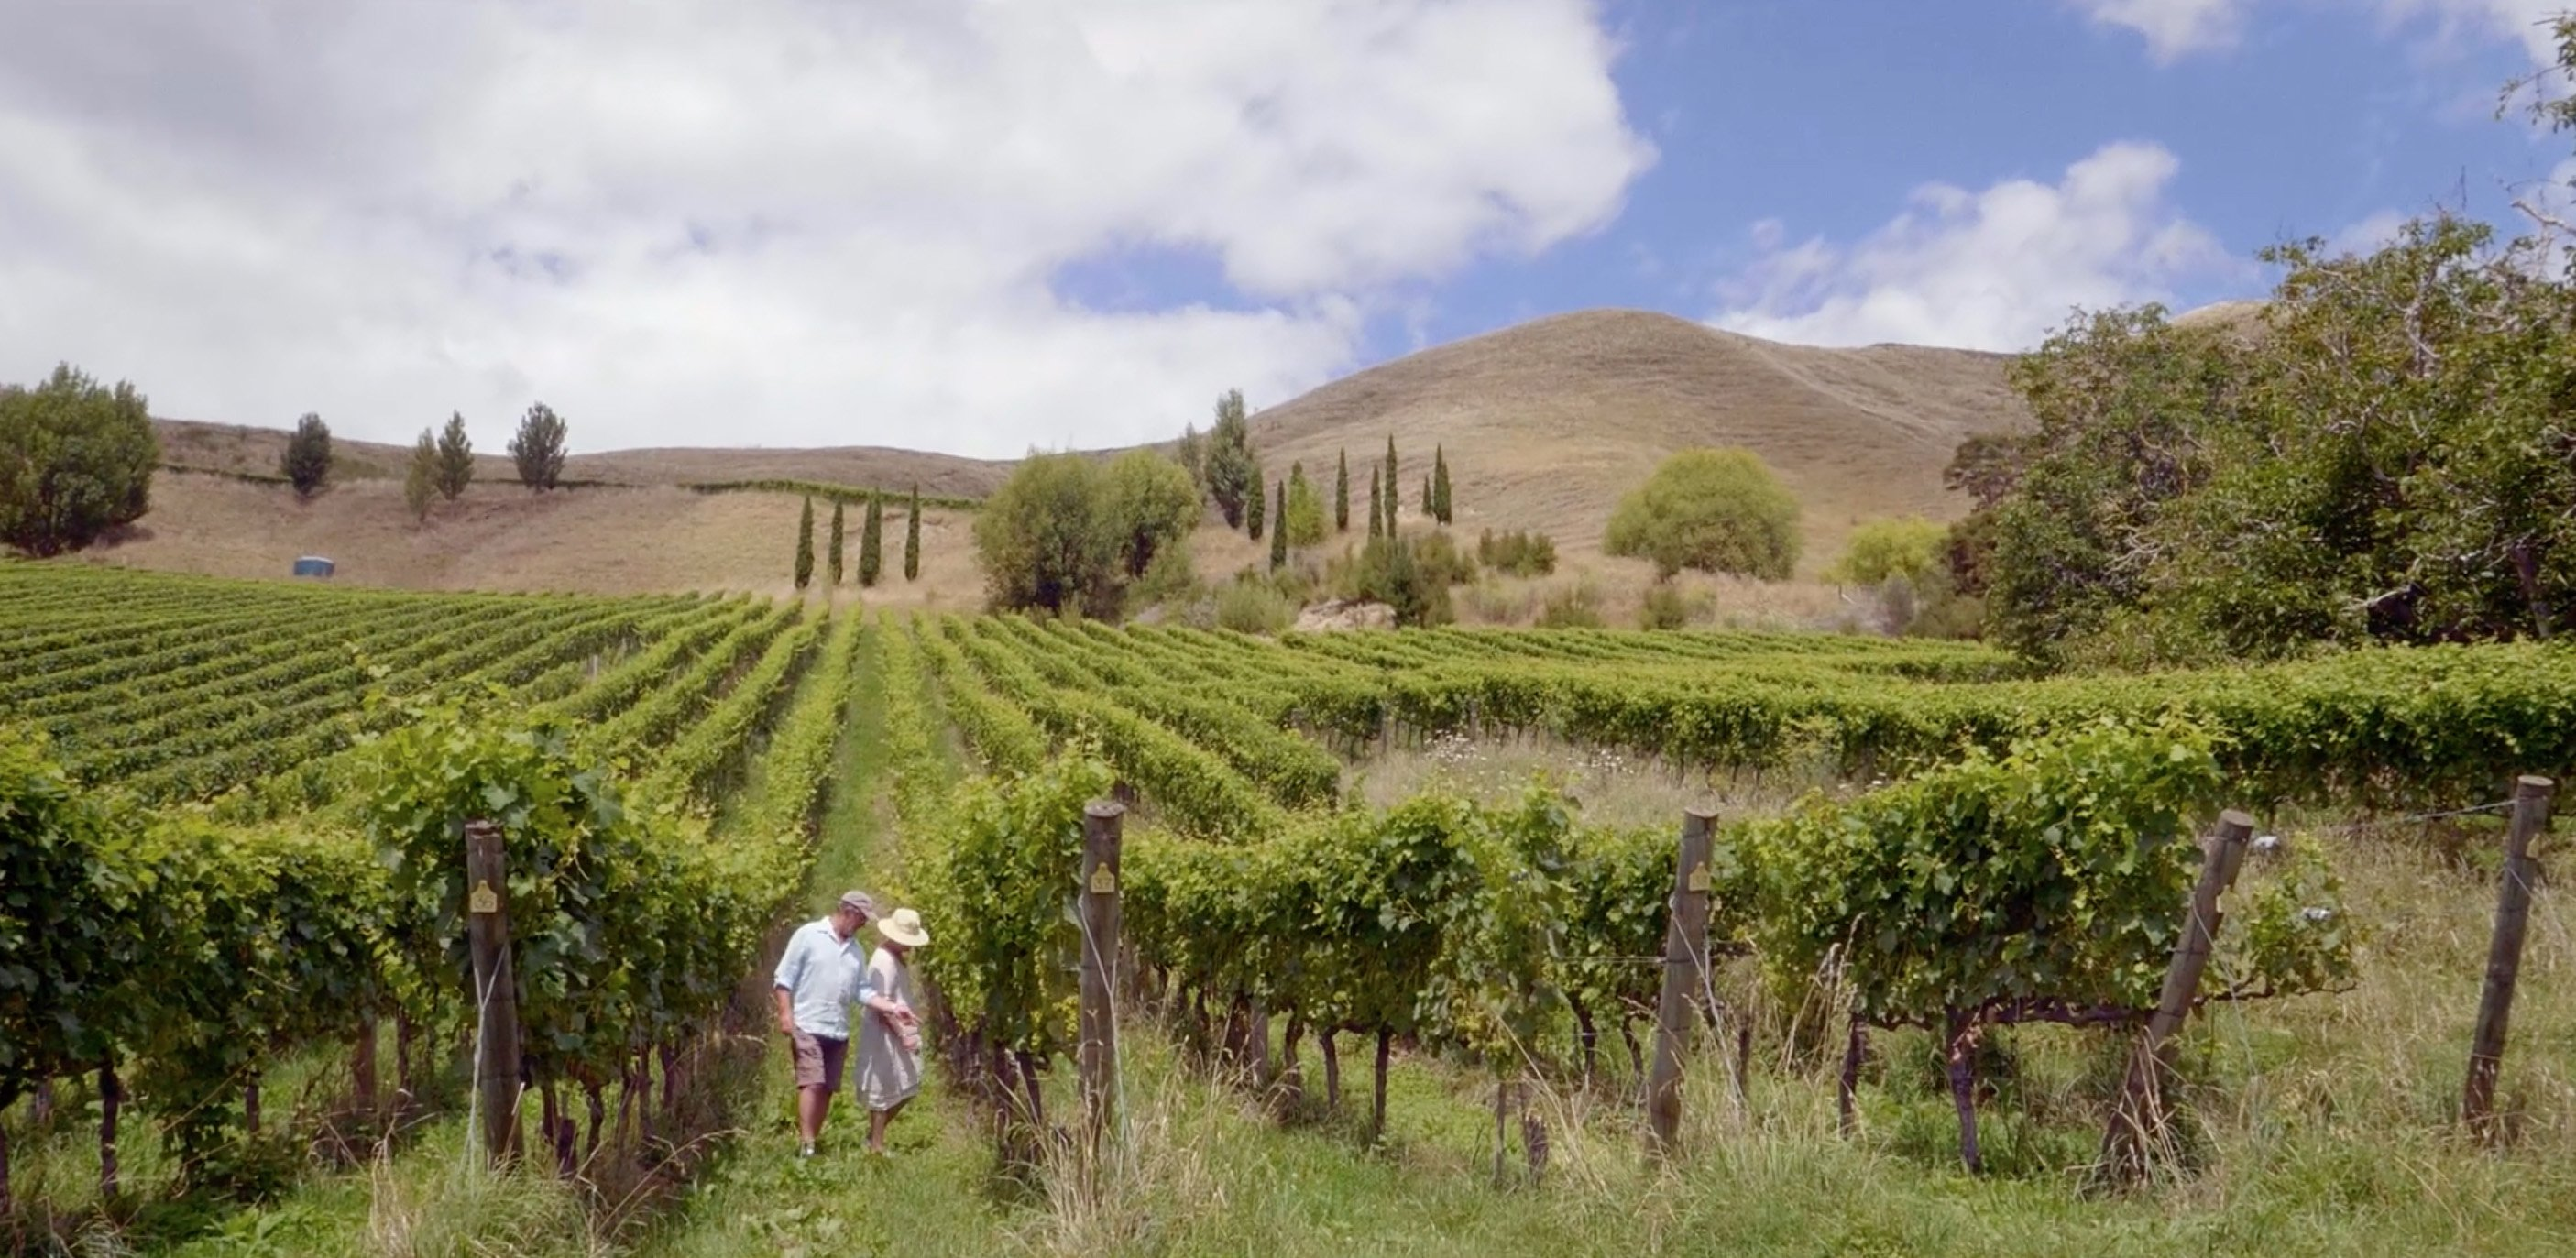 James and Annie Milton check the grapes on their biodynamic vineyard in Gisborne.